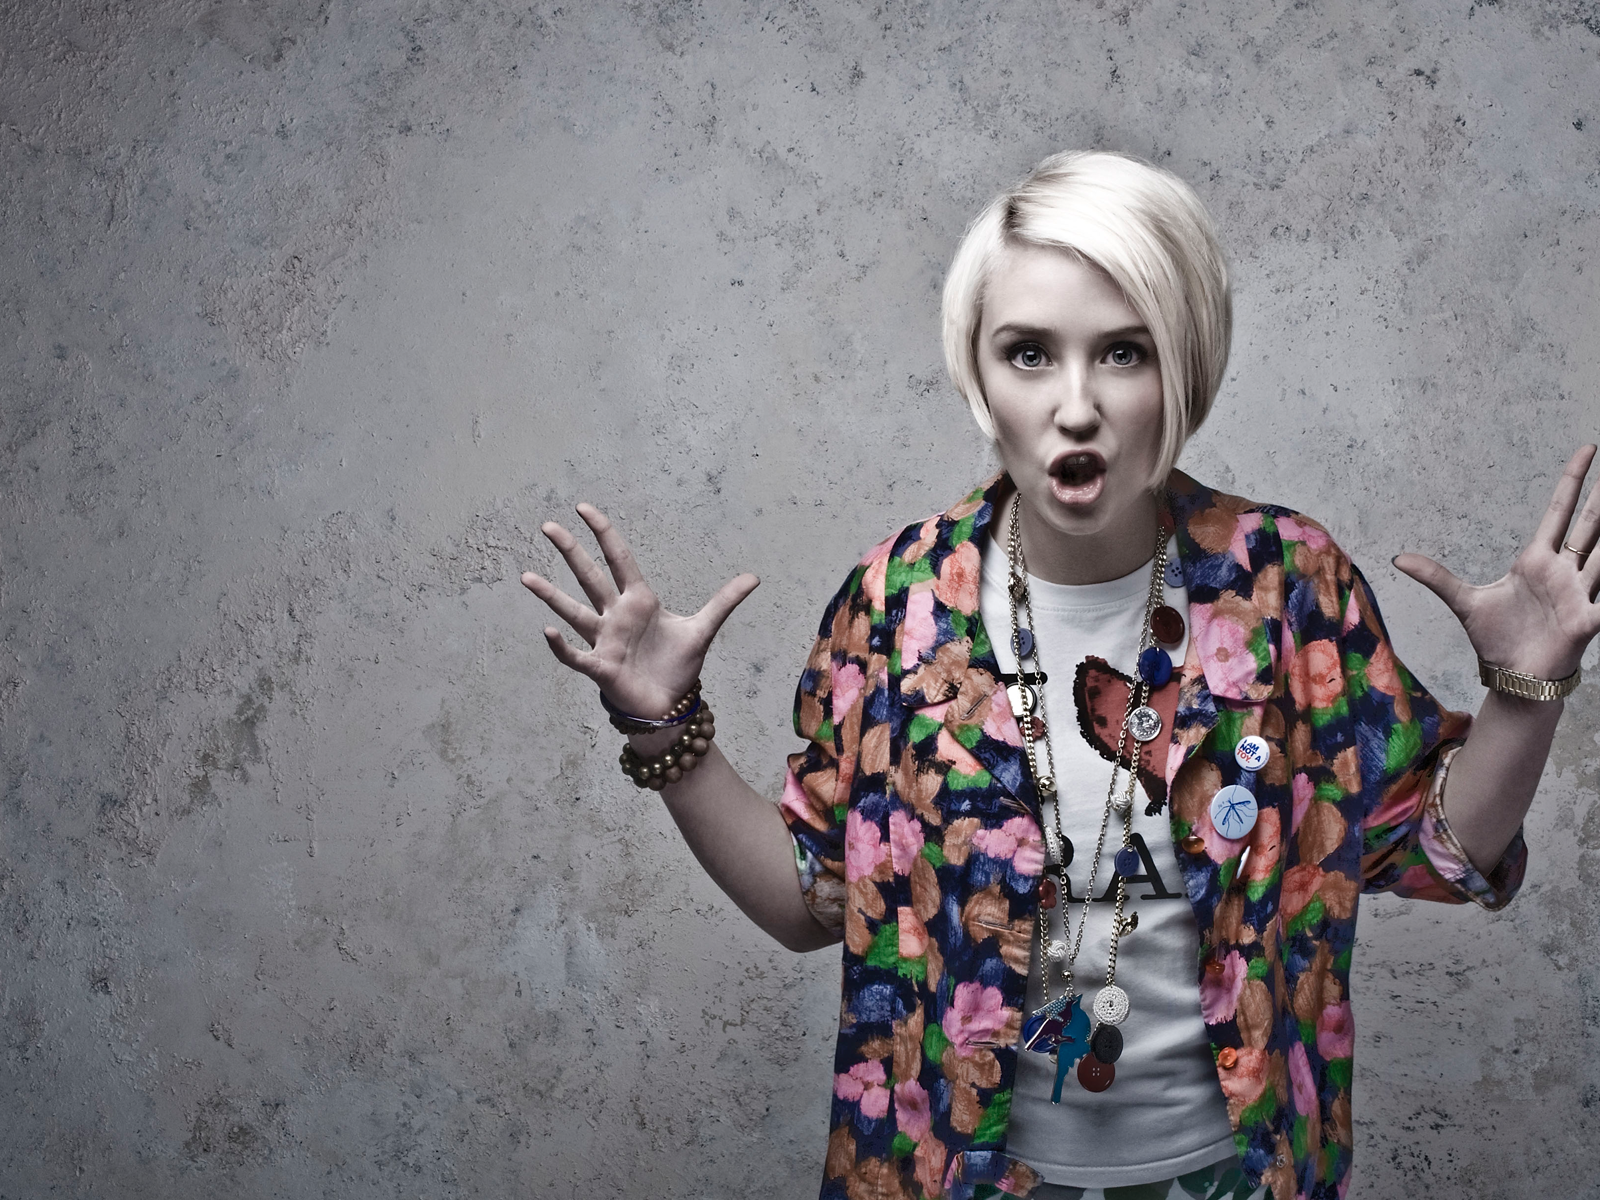 1600x1200 - Lily Loveless Wallpapers 21